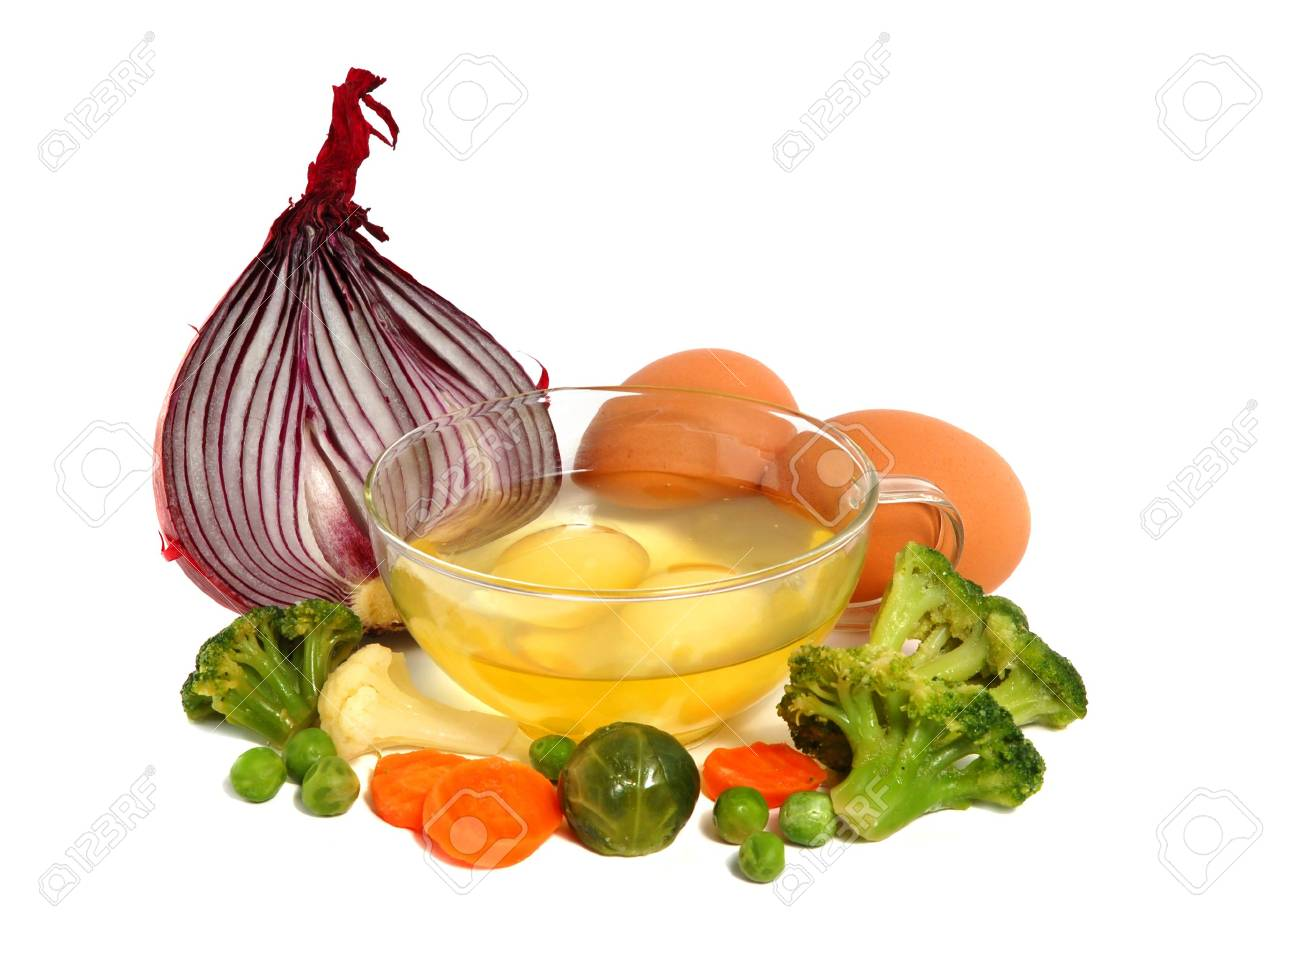 Raw eggs in a glass cup and different vegetables, healthy breakfast. Stock Photo - 3114139